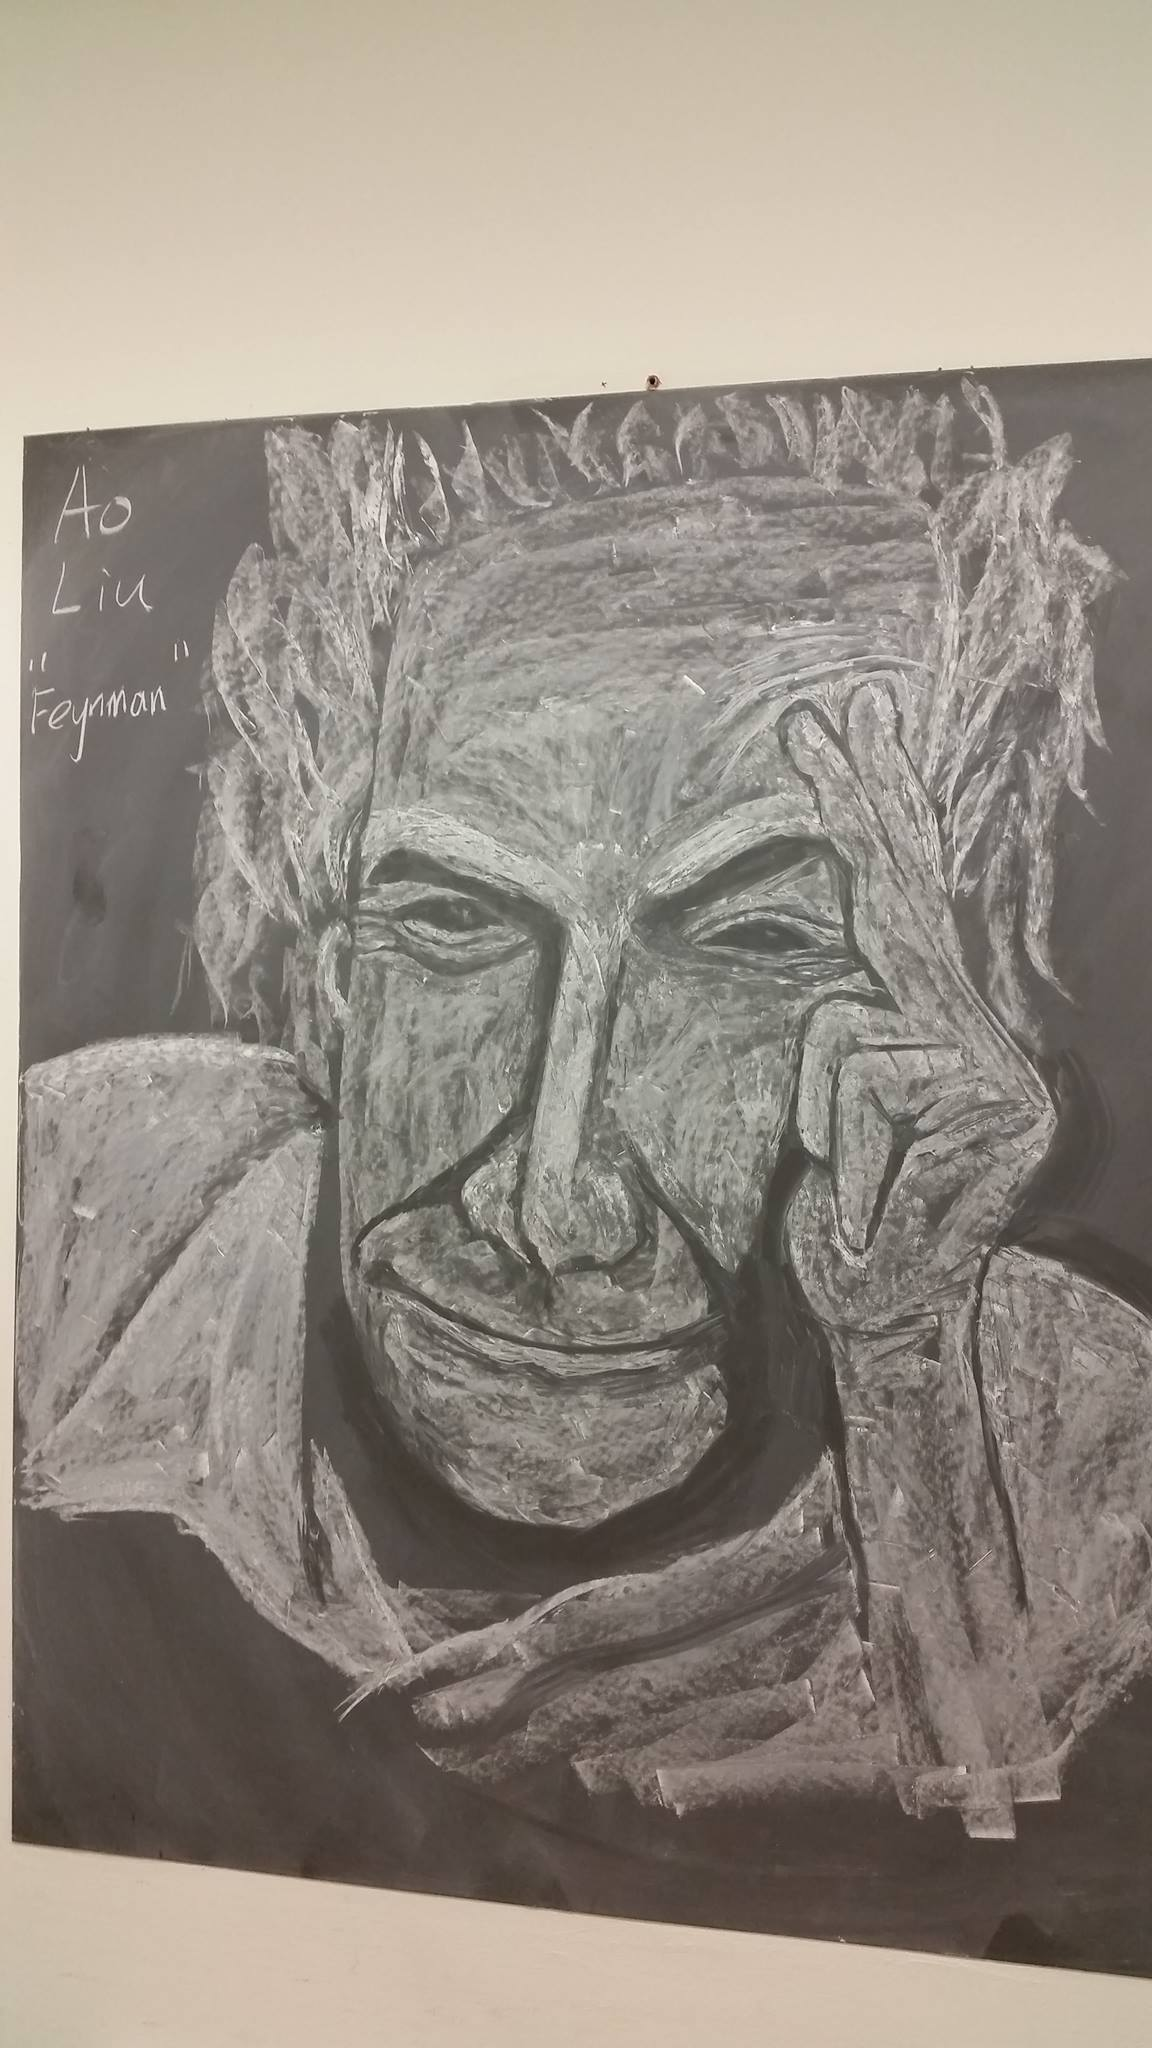 Fermilab guest scientist Ao Liu created this chalk portrait of Richard Feynman, which you can see on the 13th floor of Wilson Hall at 1321. Feynman is displayed next to a drawing of Einstein. Liu started the project for fun, but now hopes that the portraits (they are looking at us!) will inspire and motivate us to be creative and productive. Drawing: Ao Liu, AD